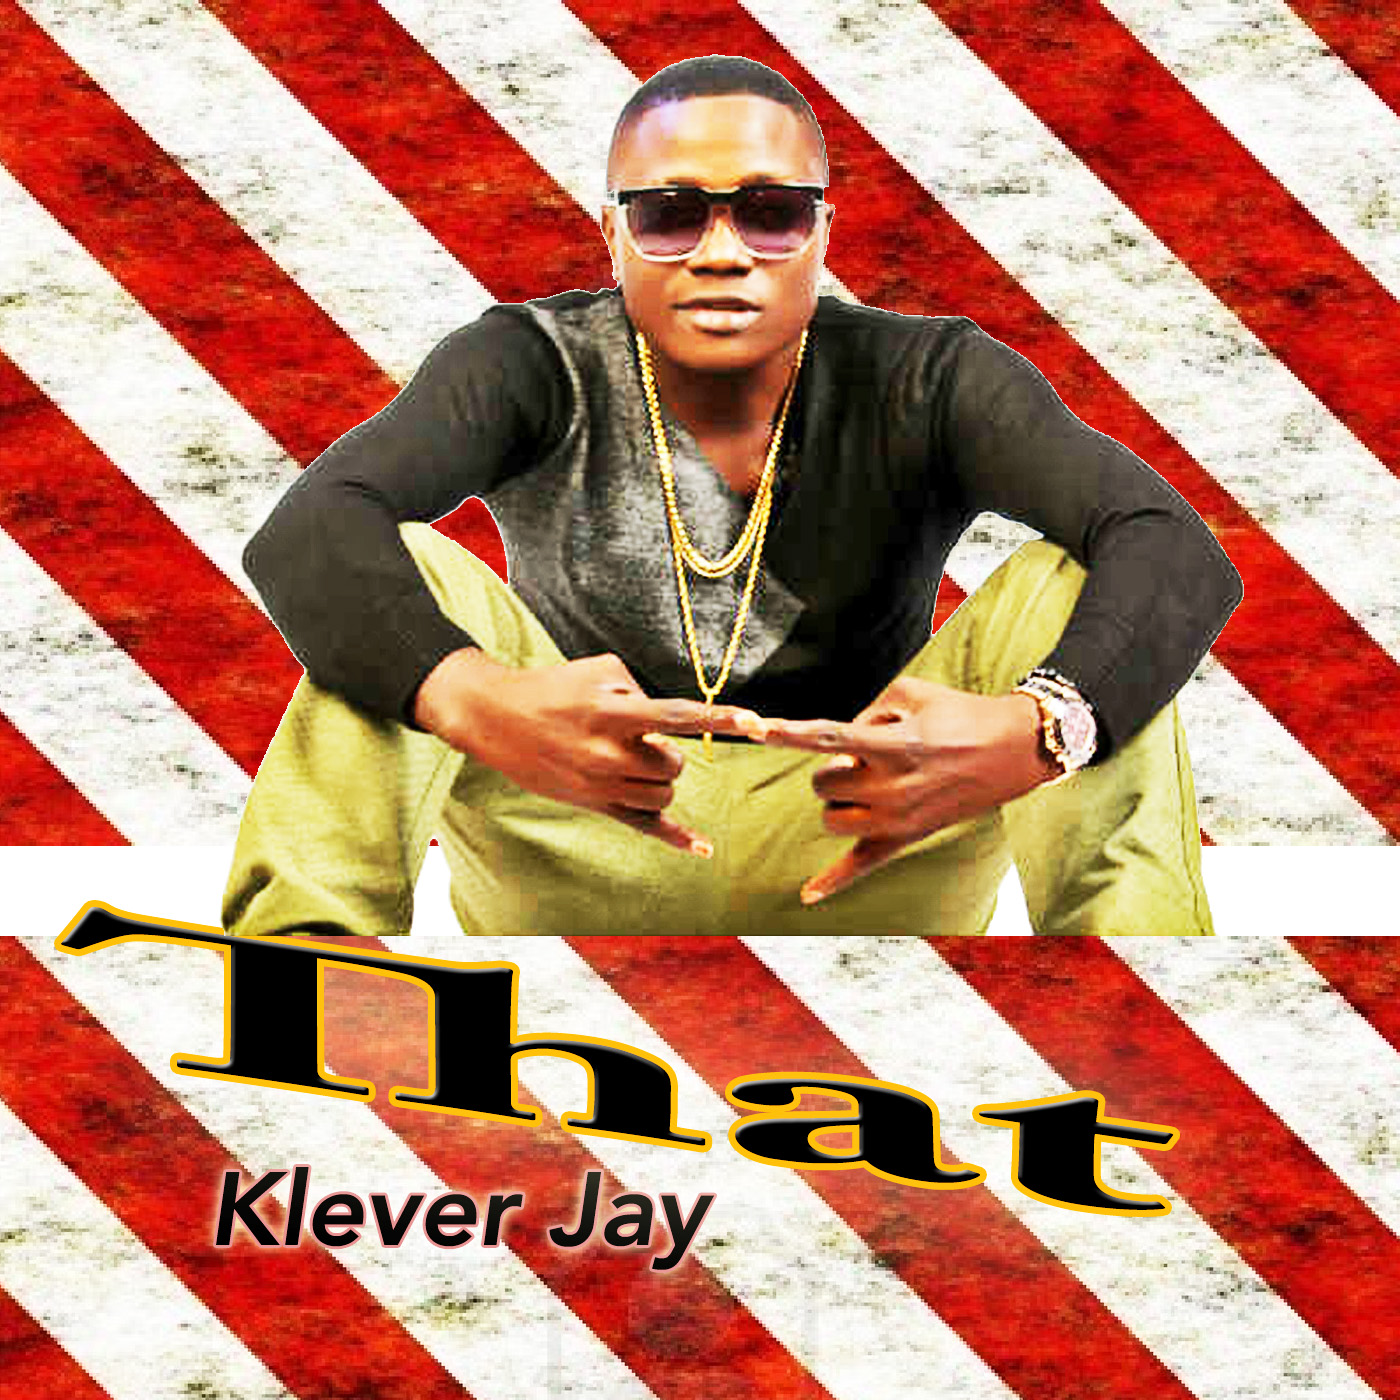 That Klever Jay